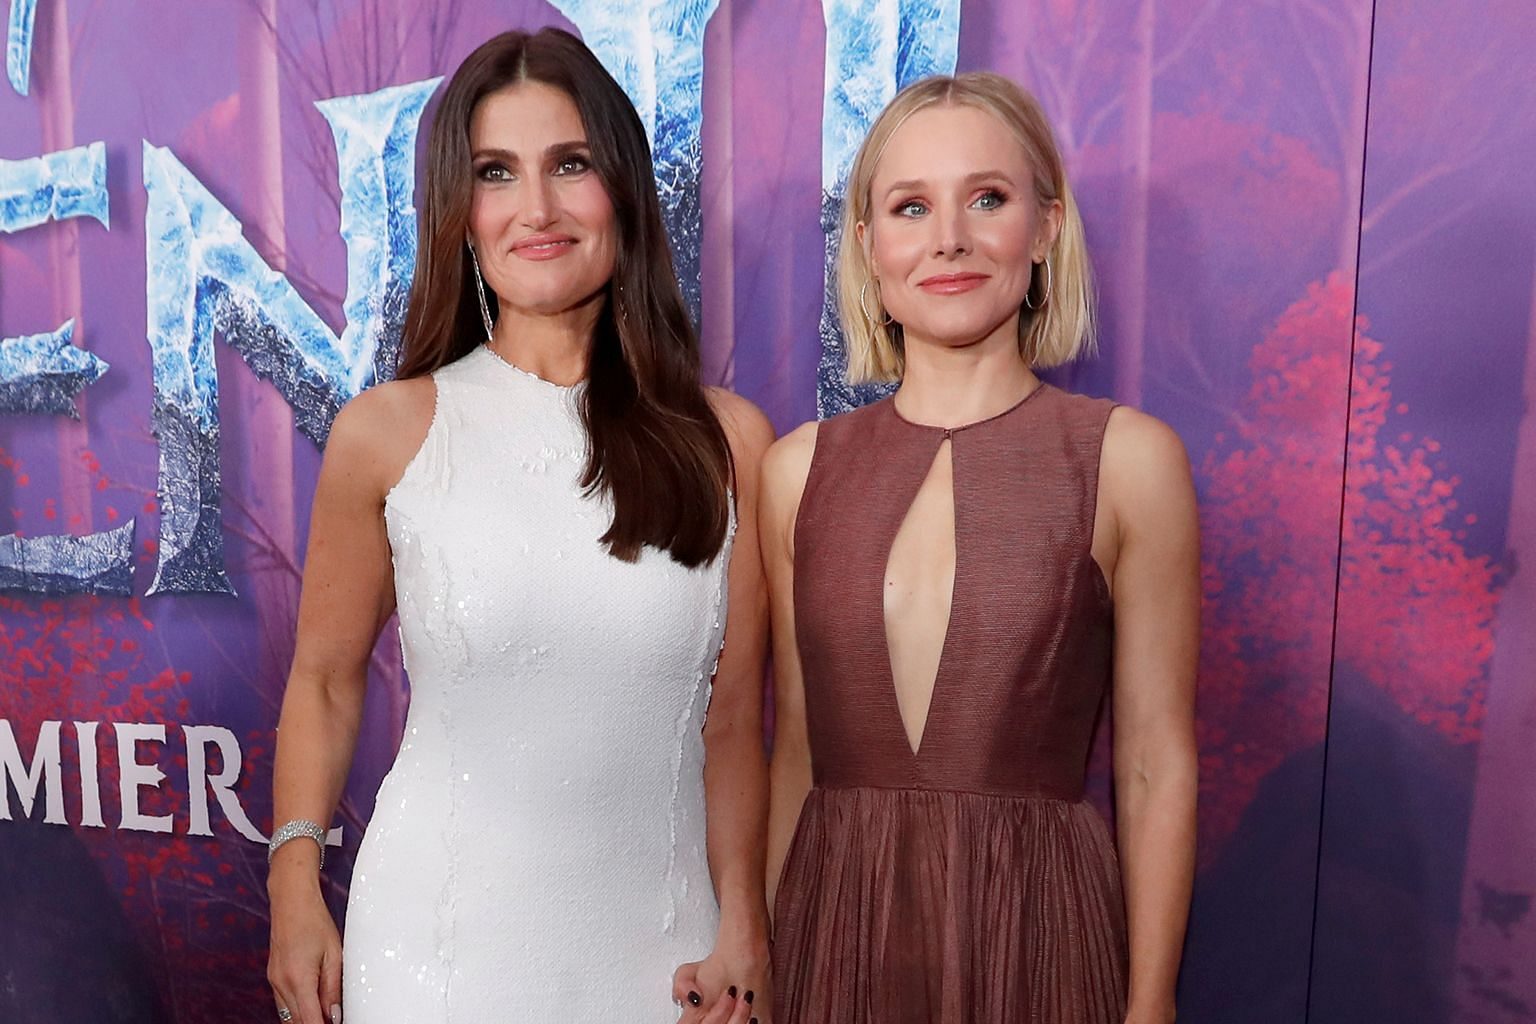 Frozen 2 (main picture) stars Idina Menzel (far left) and Kristen Bell, and is co-directed by Jennifer Lee (top) and Chris Buck (above).